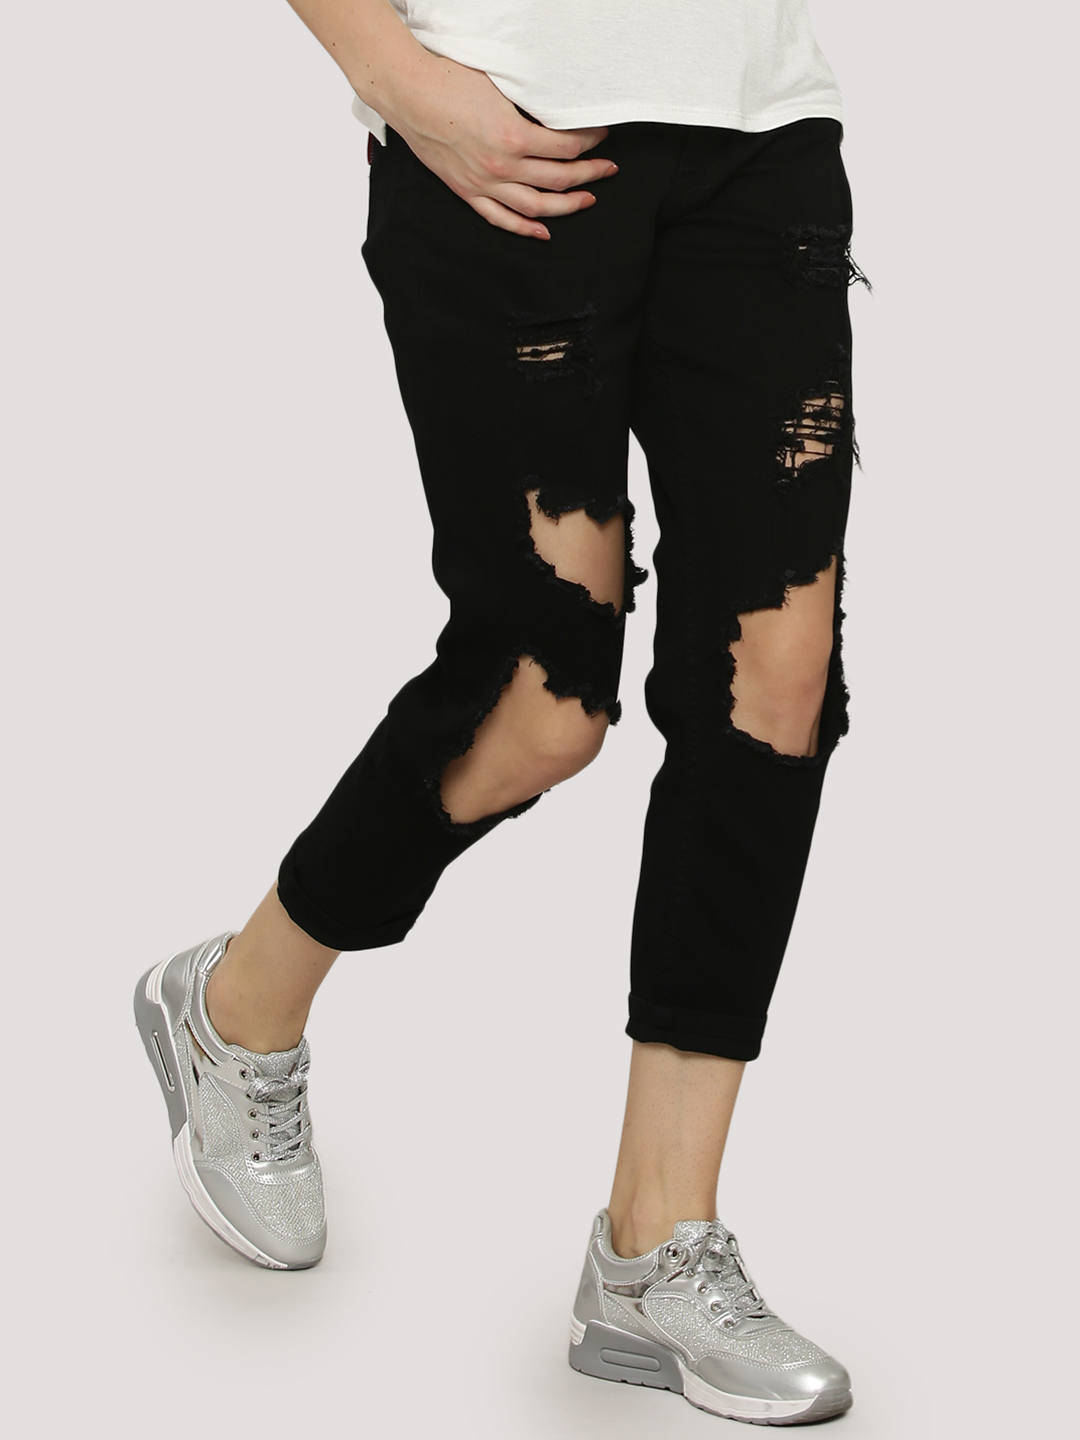 The Classic Black Destroyed Jeans 1